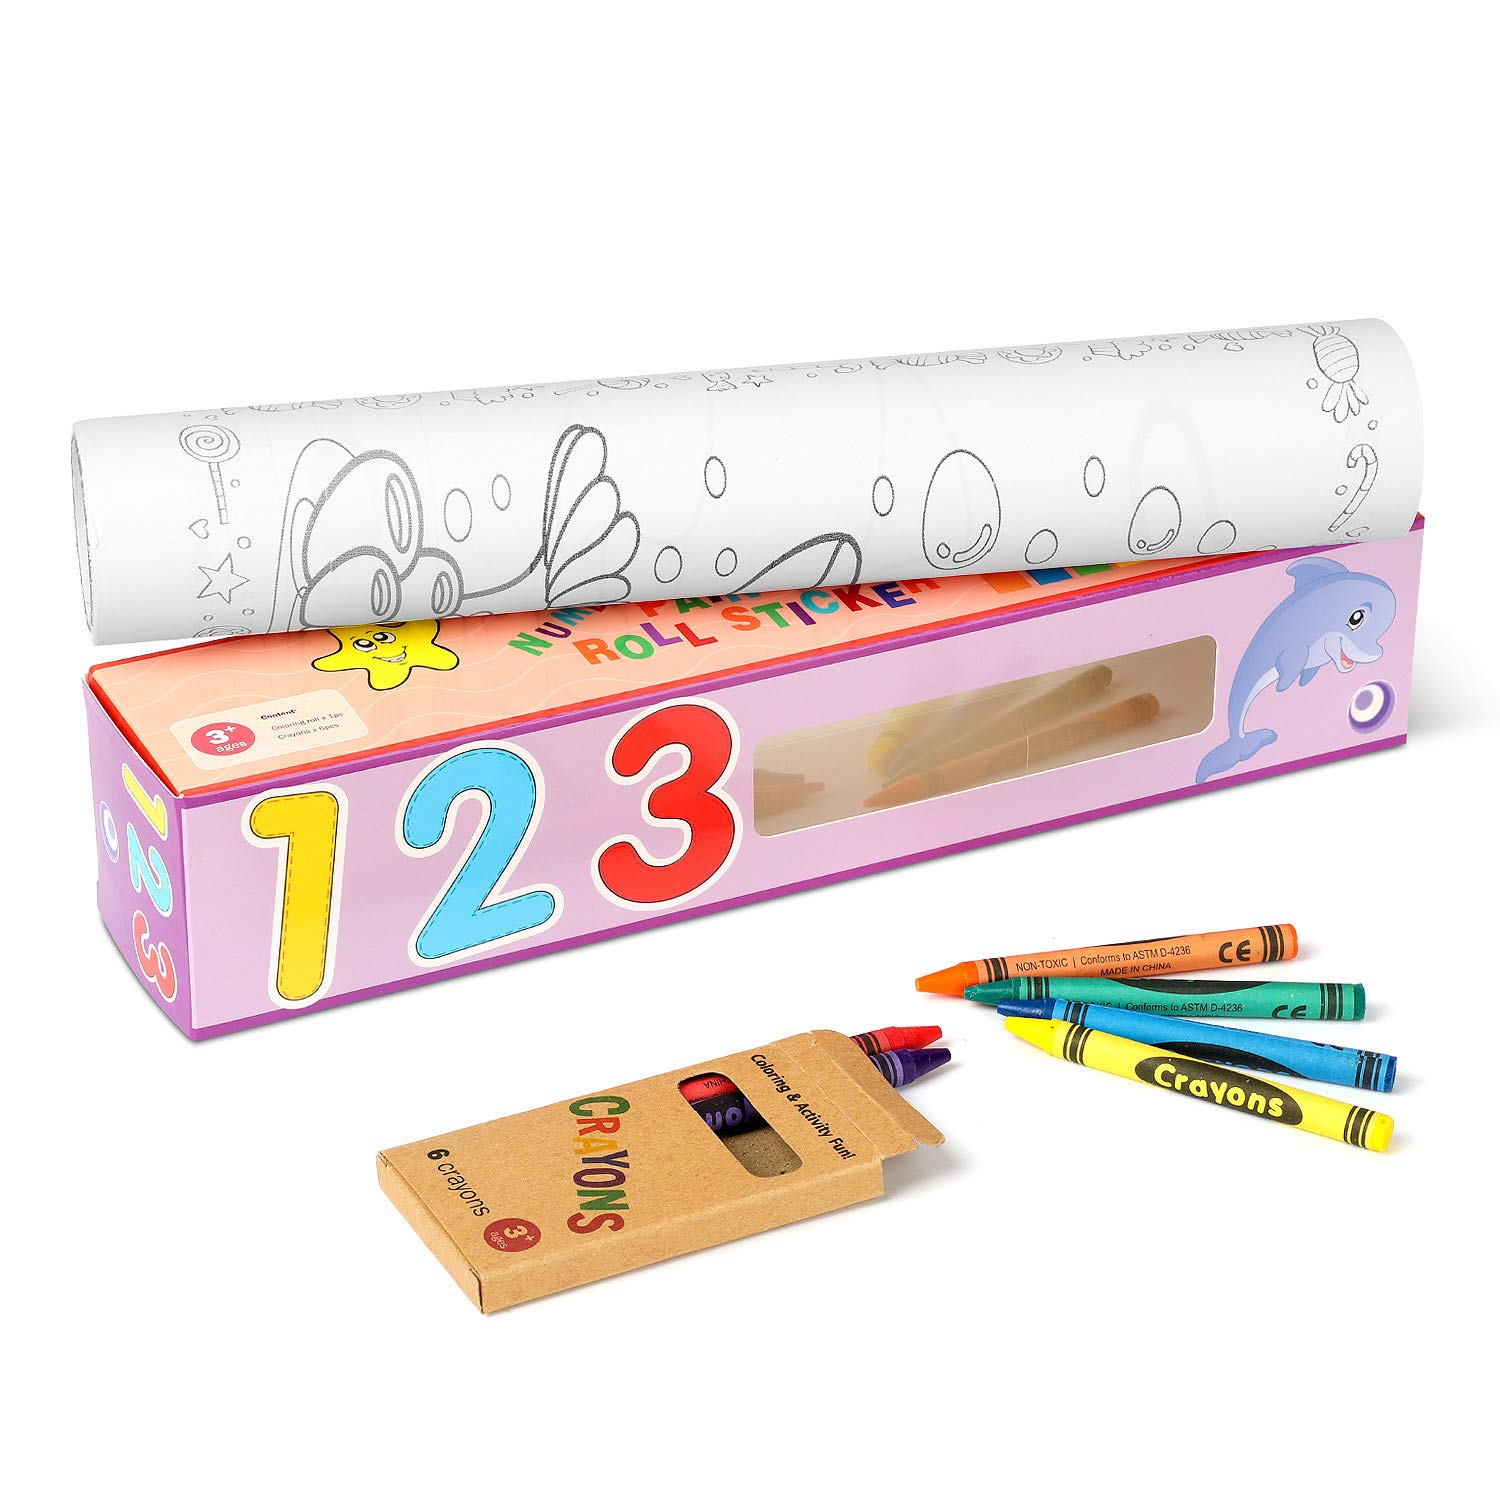 Betibeti 15.6 Foot Sticker Coloring Roll Counting Continuous Coloring Paper Great for Group Coloring Ages 3